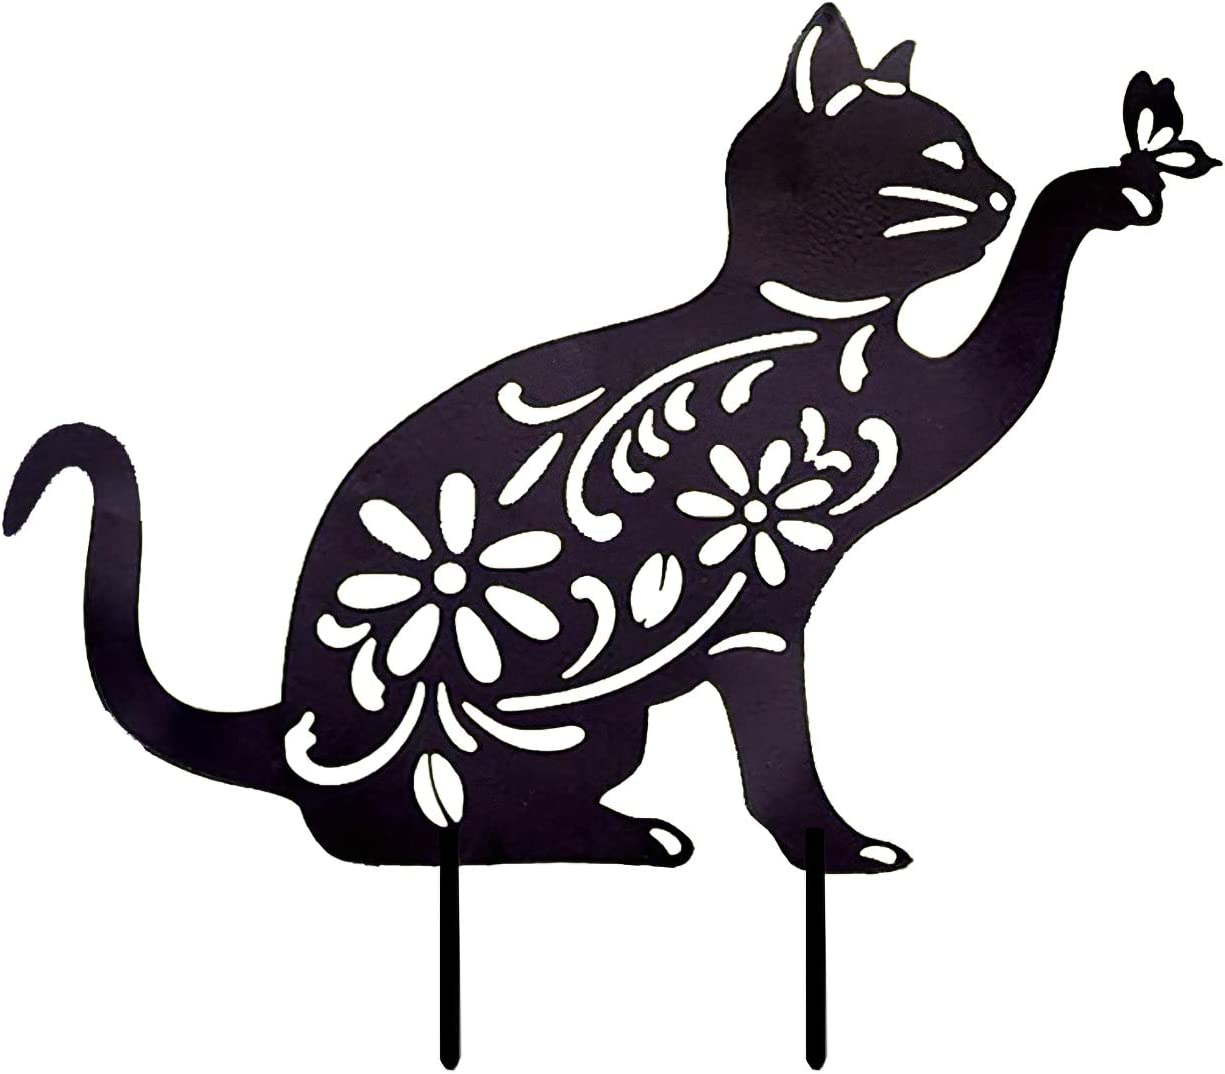 SS SUNSBELL Cat Silhouette Cat Planters, Cat Garden Metal Stakes, Animal Stake Metal Animal Decorations, Cat Toys Gifts for Cat Lovers, Art Lawn Outdoor Home Decor Metal Floral Cutouts